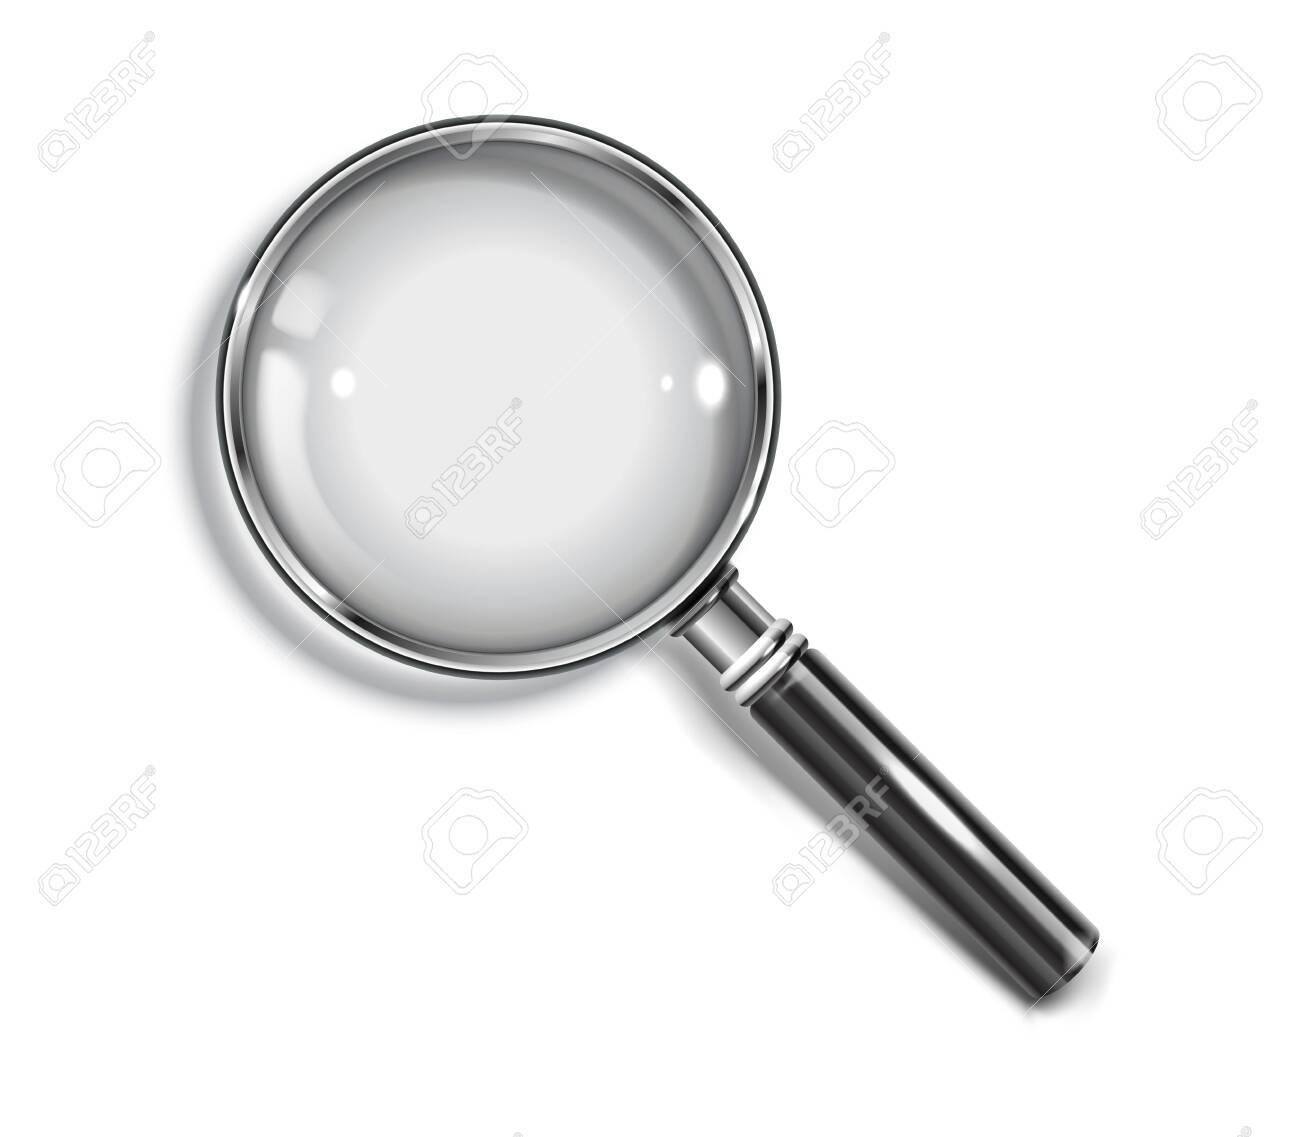 Realistic Magnifying glass with drop shadow on a transparent background - stock vector EPS 10. - 143892068